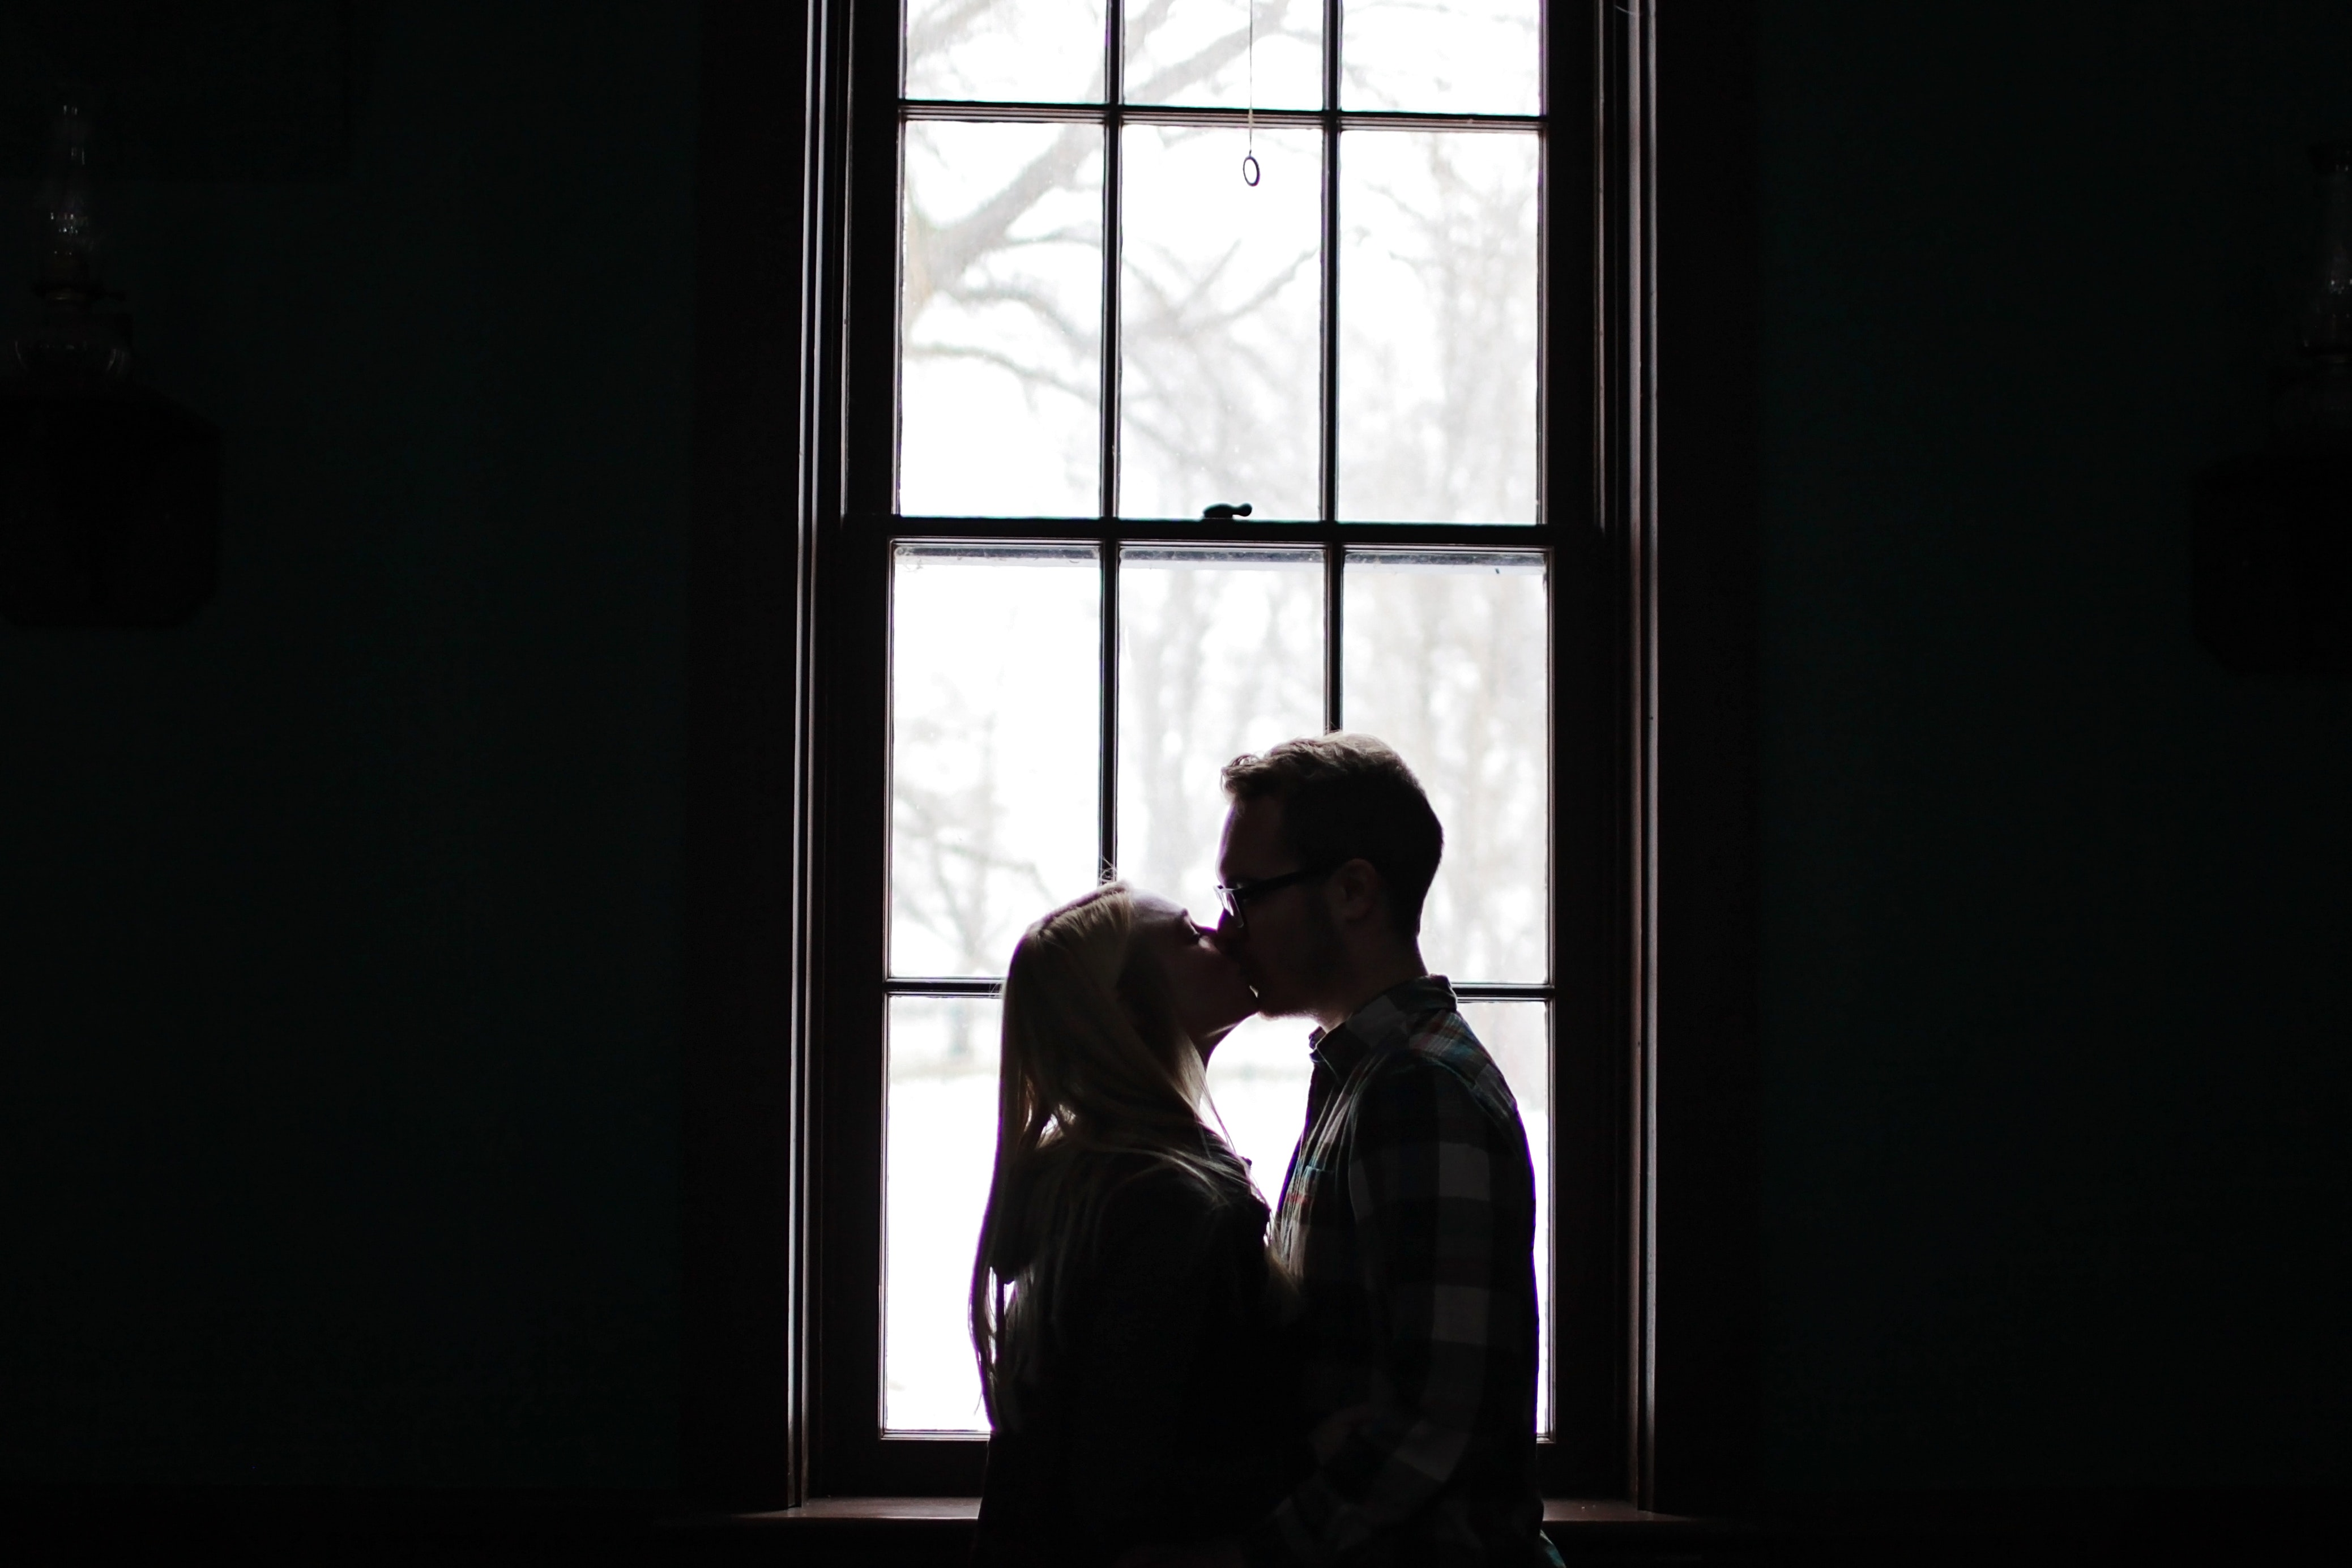 Man and woman kissing beside window photo